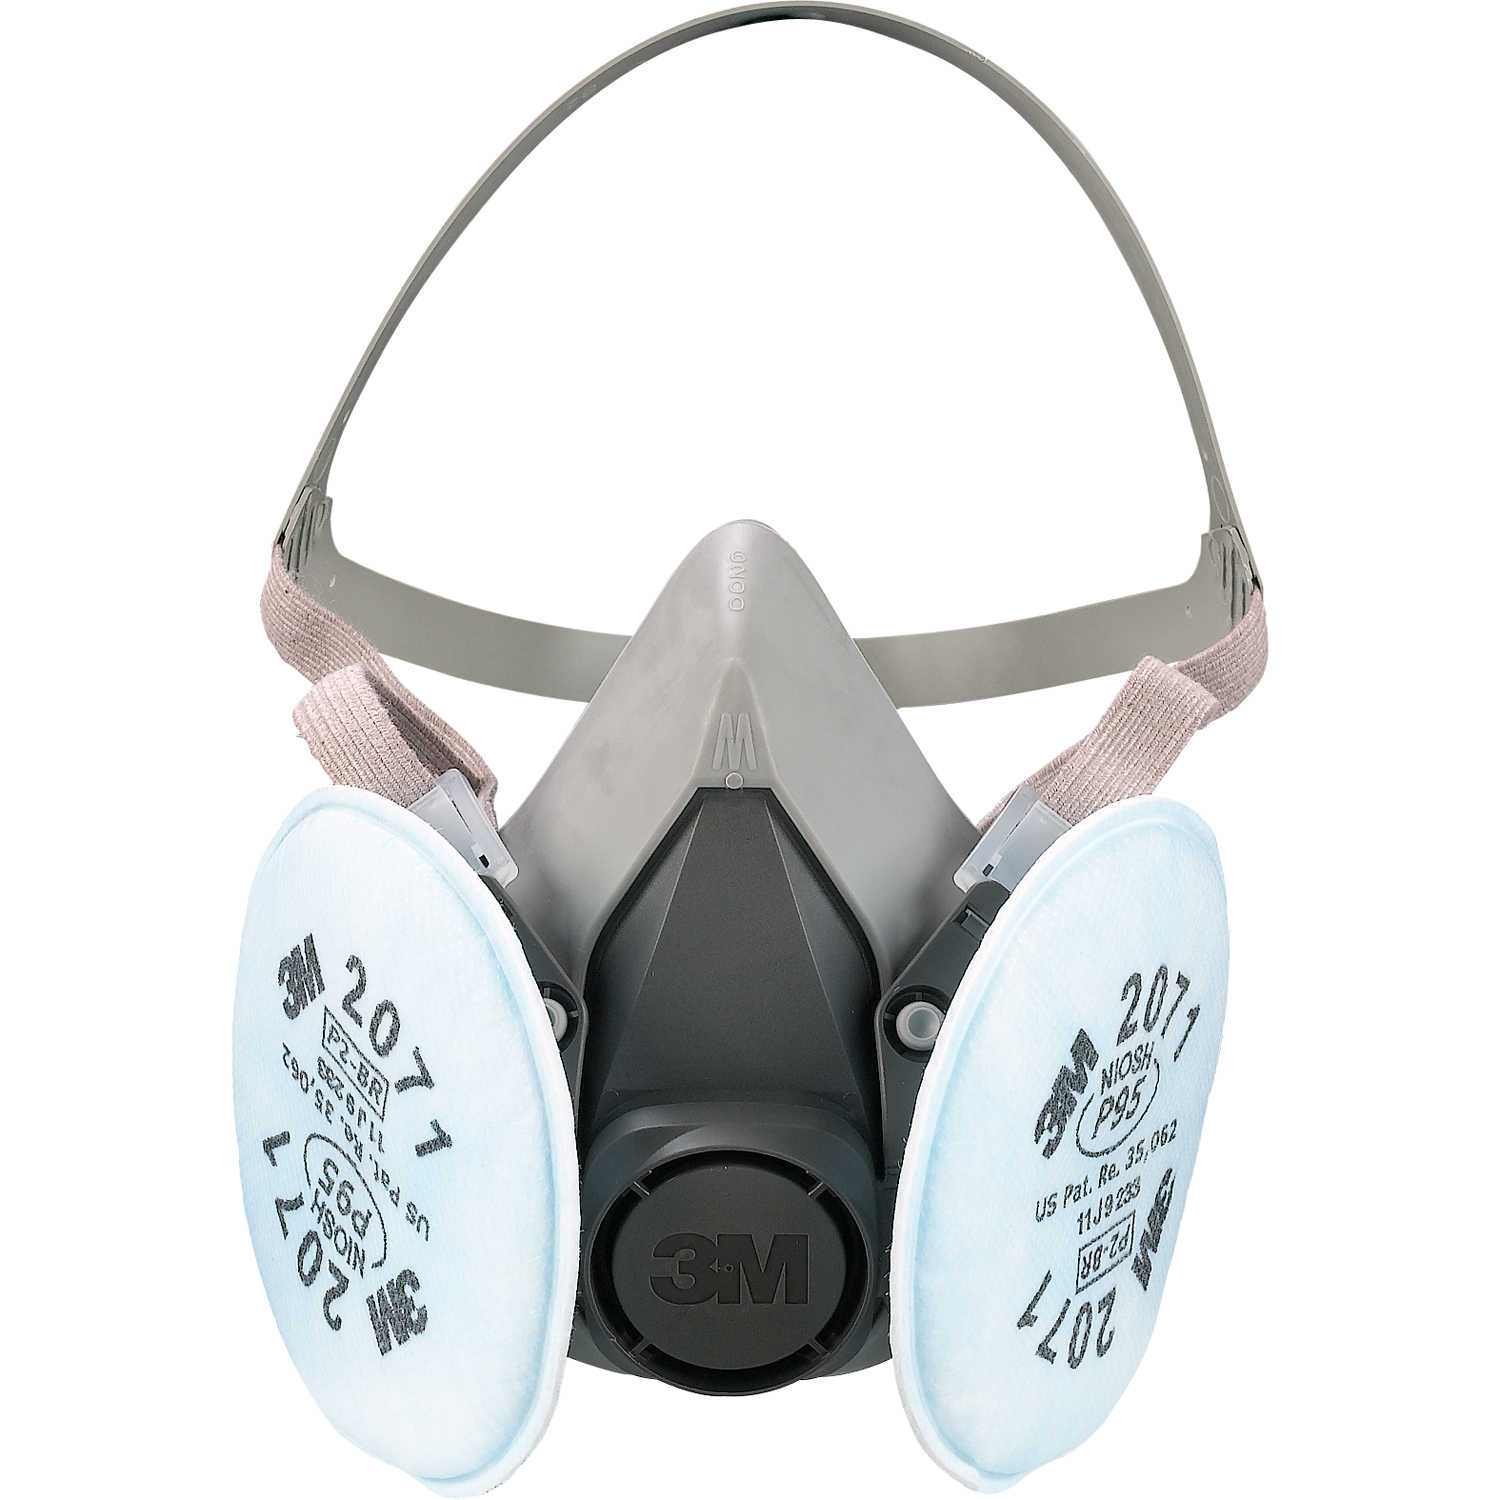 3m cold weather mask